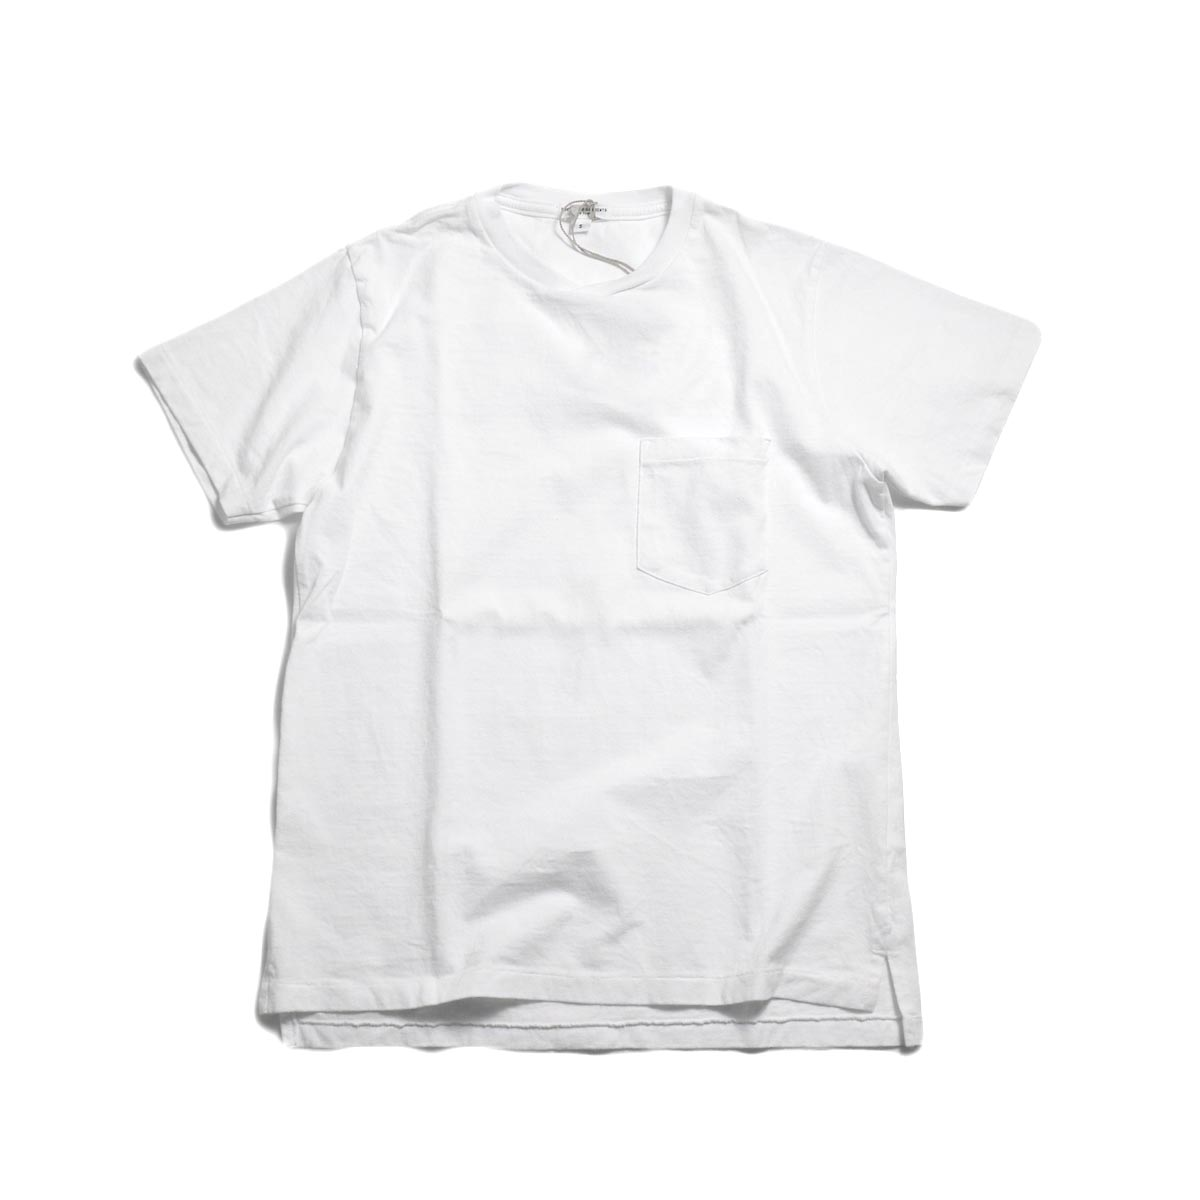 ENGINEERED GARMENTS Workaday / Crossover Neck Pocket Tee -White